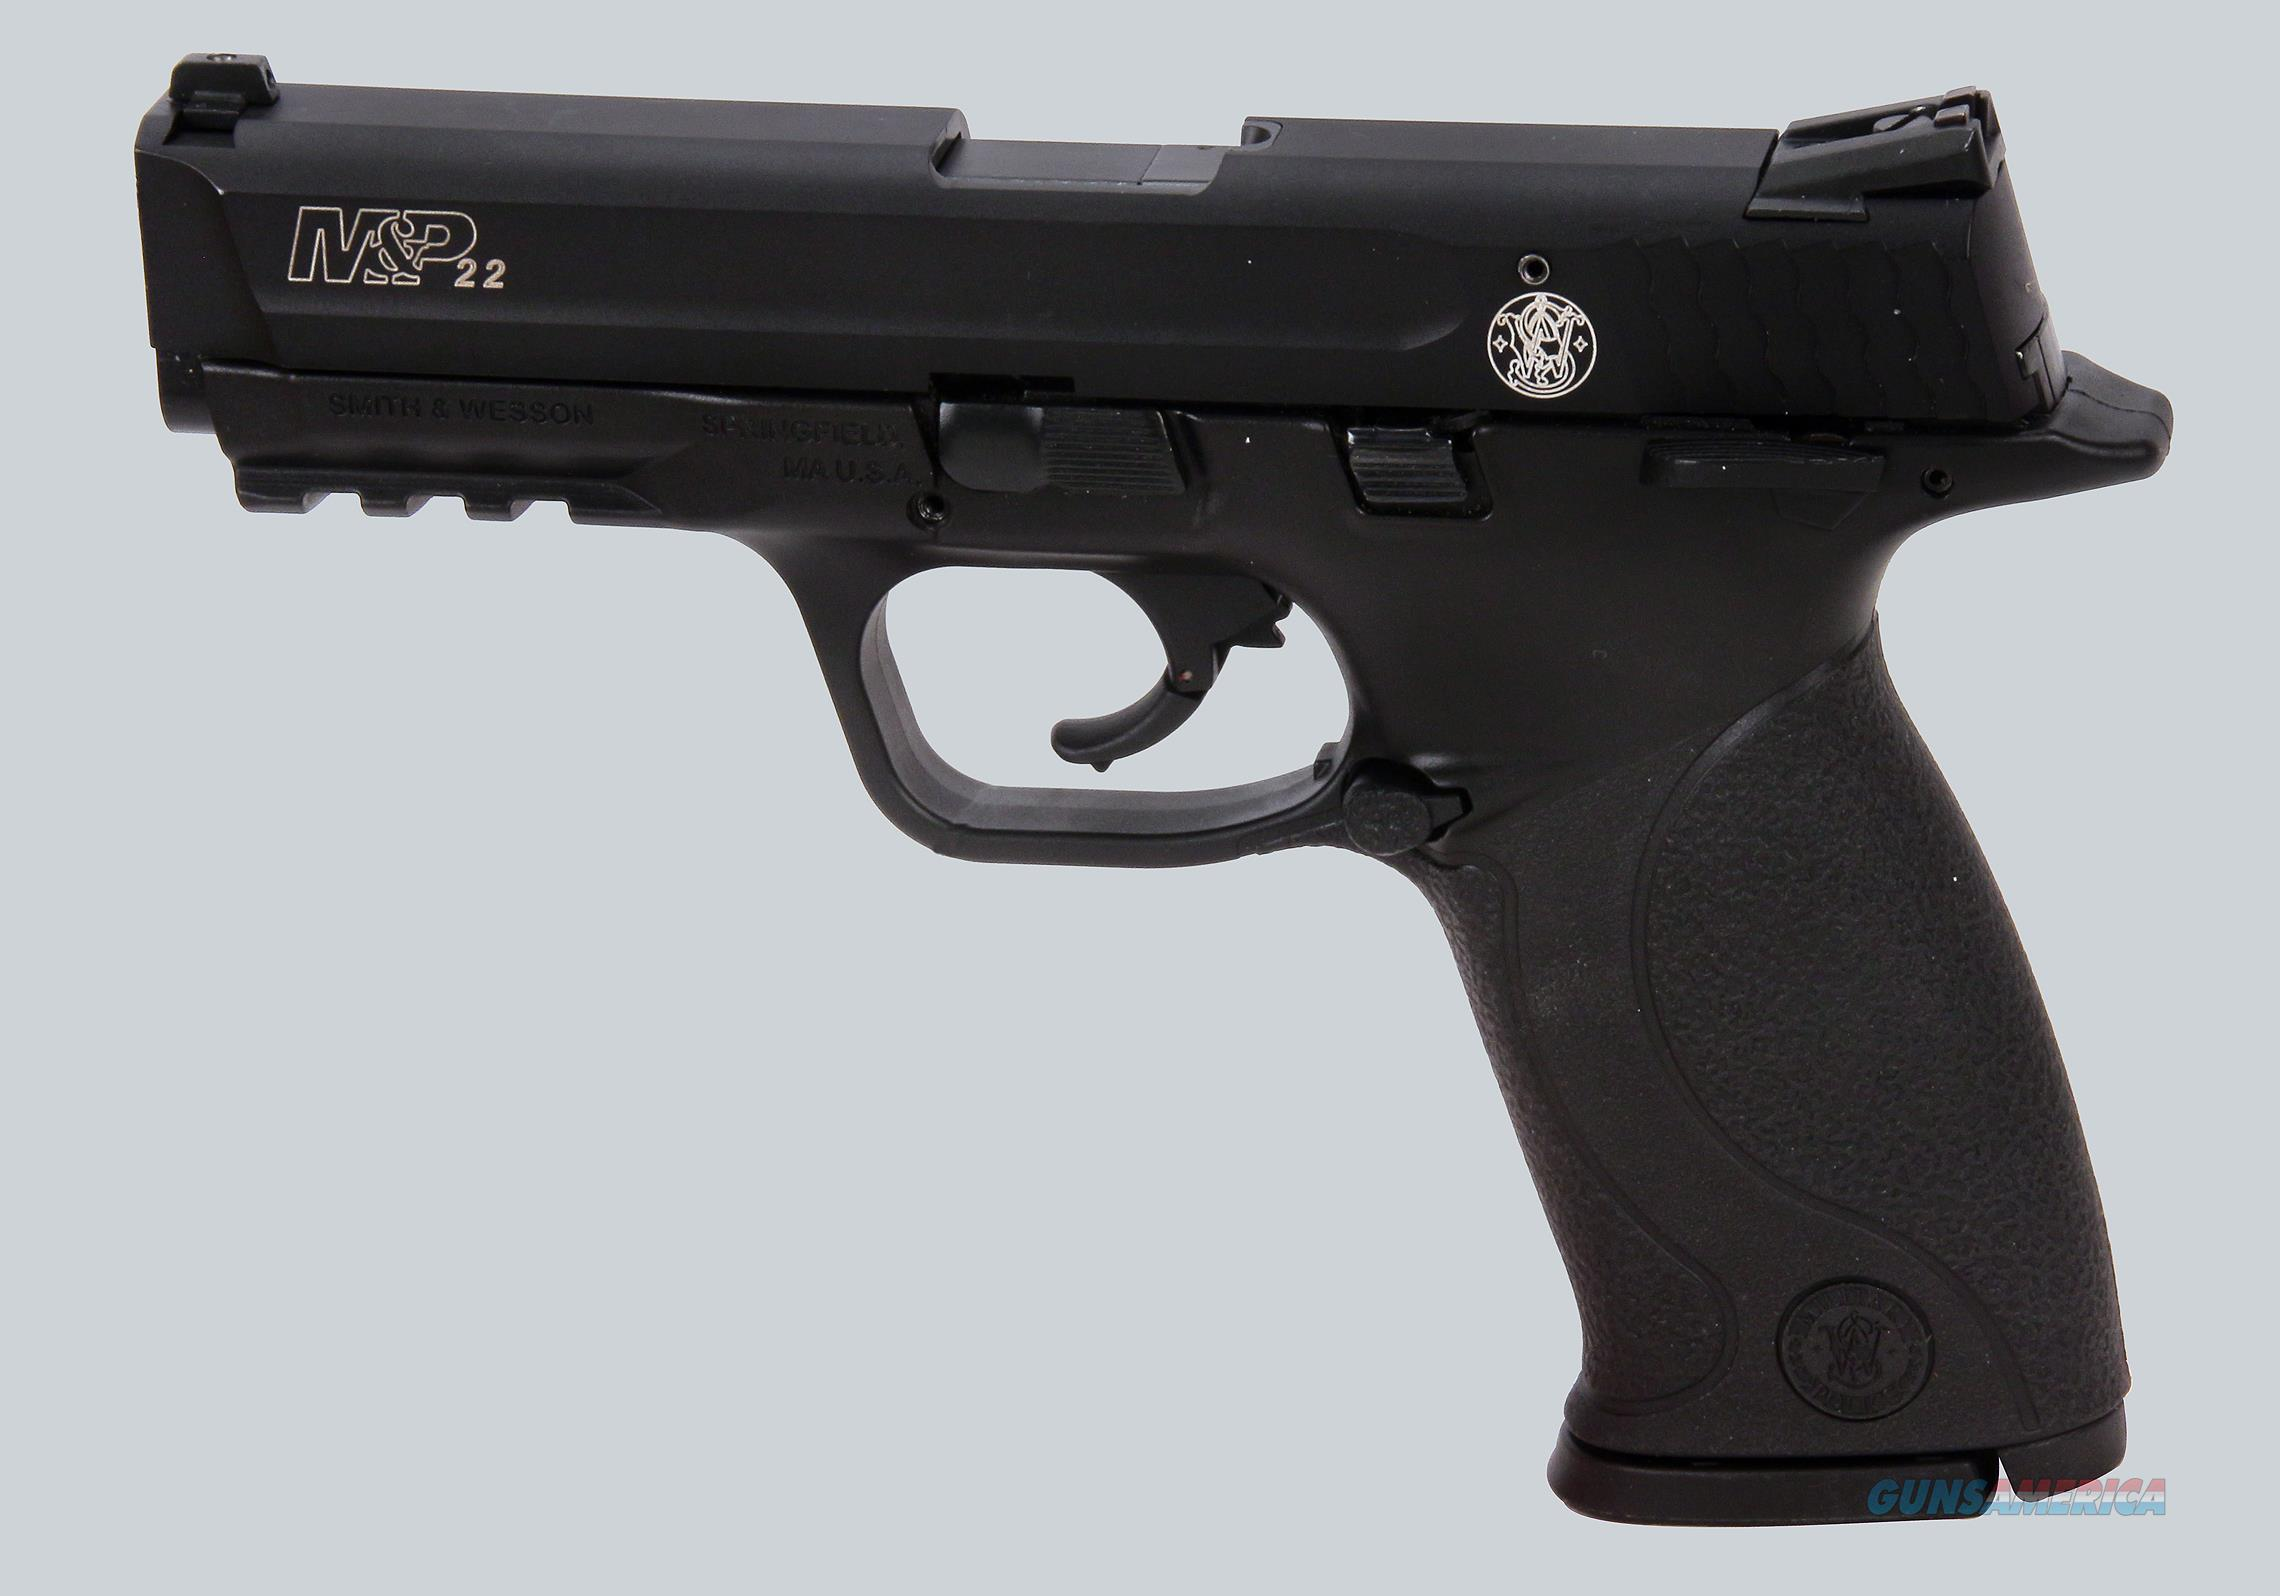 Smith & Wesson 22LR M&P 22 Pistol  Guns > Pistols > Smith & Wesson Pistols - Autos > .22 Autos